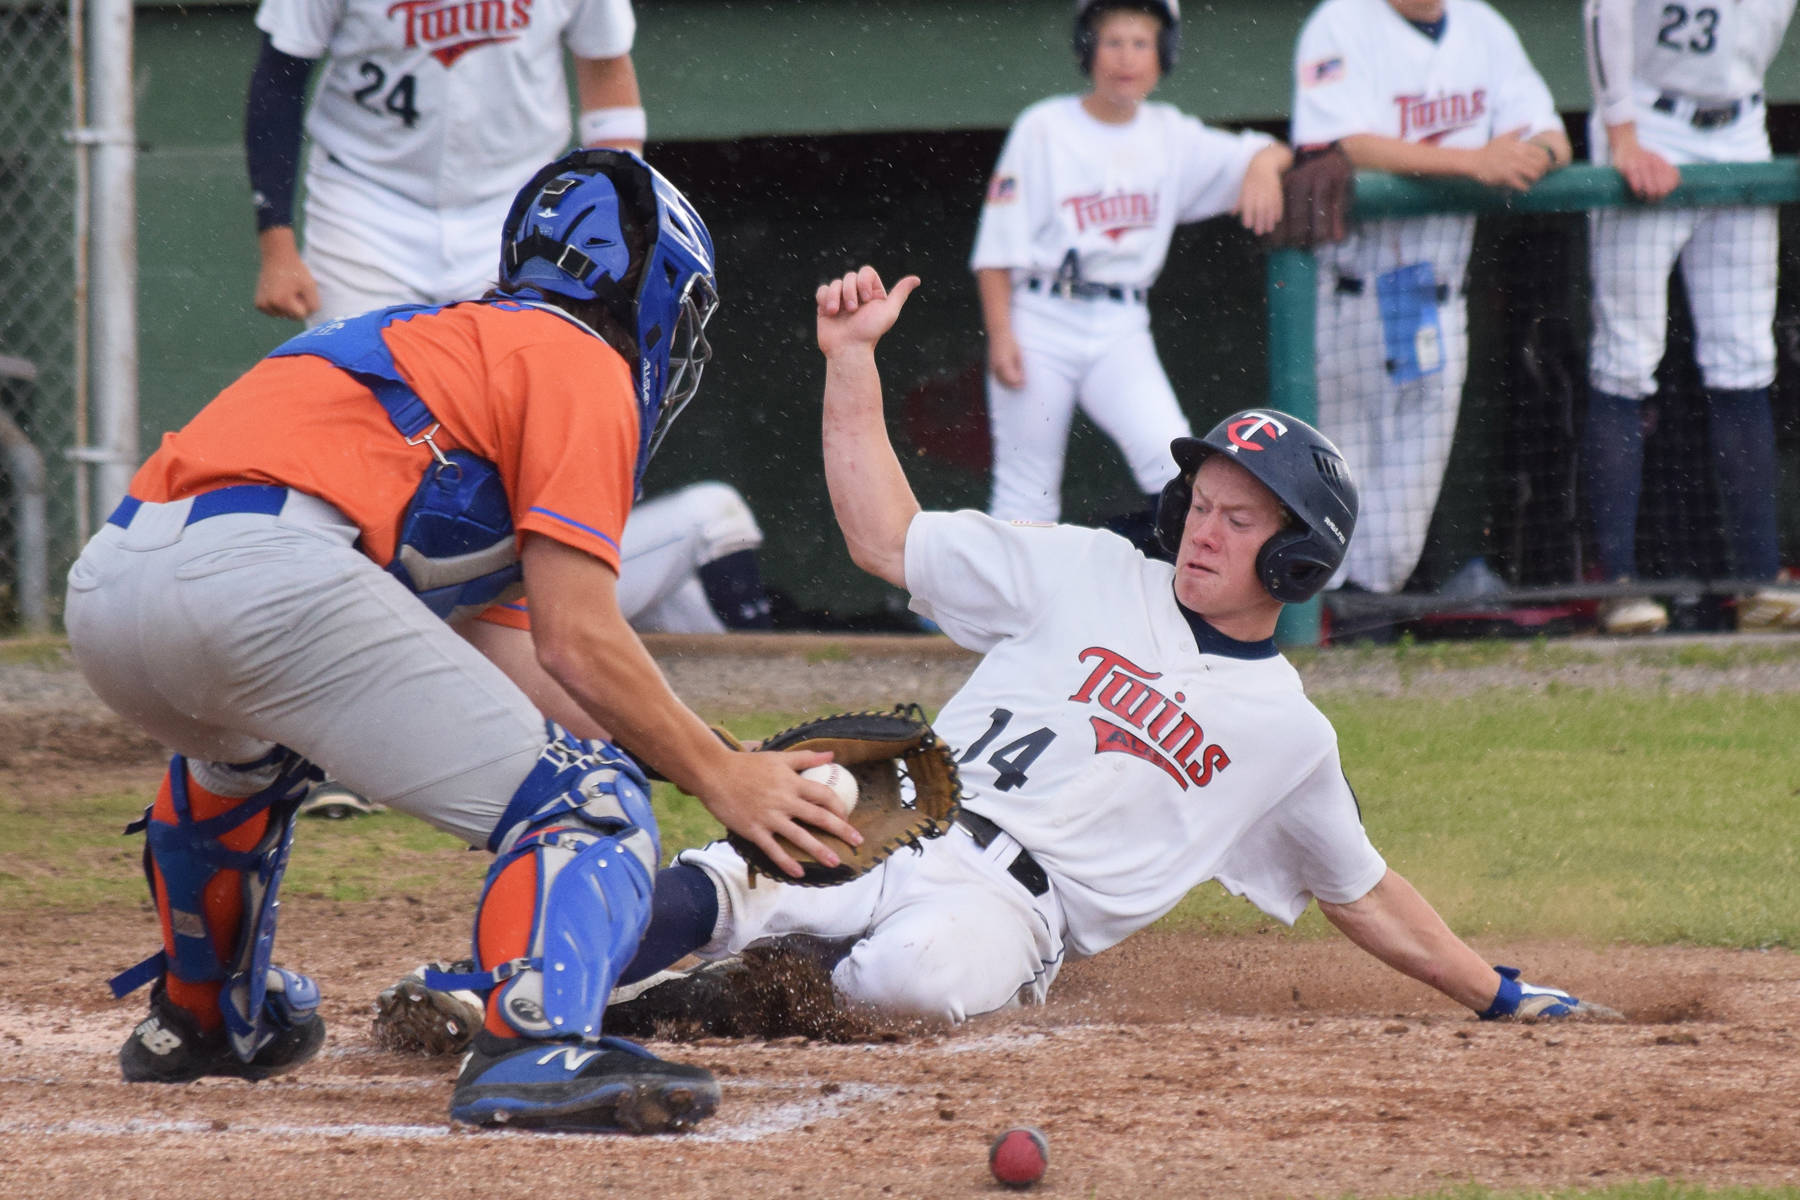 Twins pitcher Mose Hayes (14) slides safely into home ahead of the tag of Palmer catcher Brady Shults Tuesday, July 16, 2019, at Coral Seymour Memorial Park in Kenai, Alaska. (Photo by Joey Klecka/Peninsula Clarion)